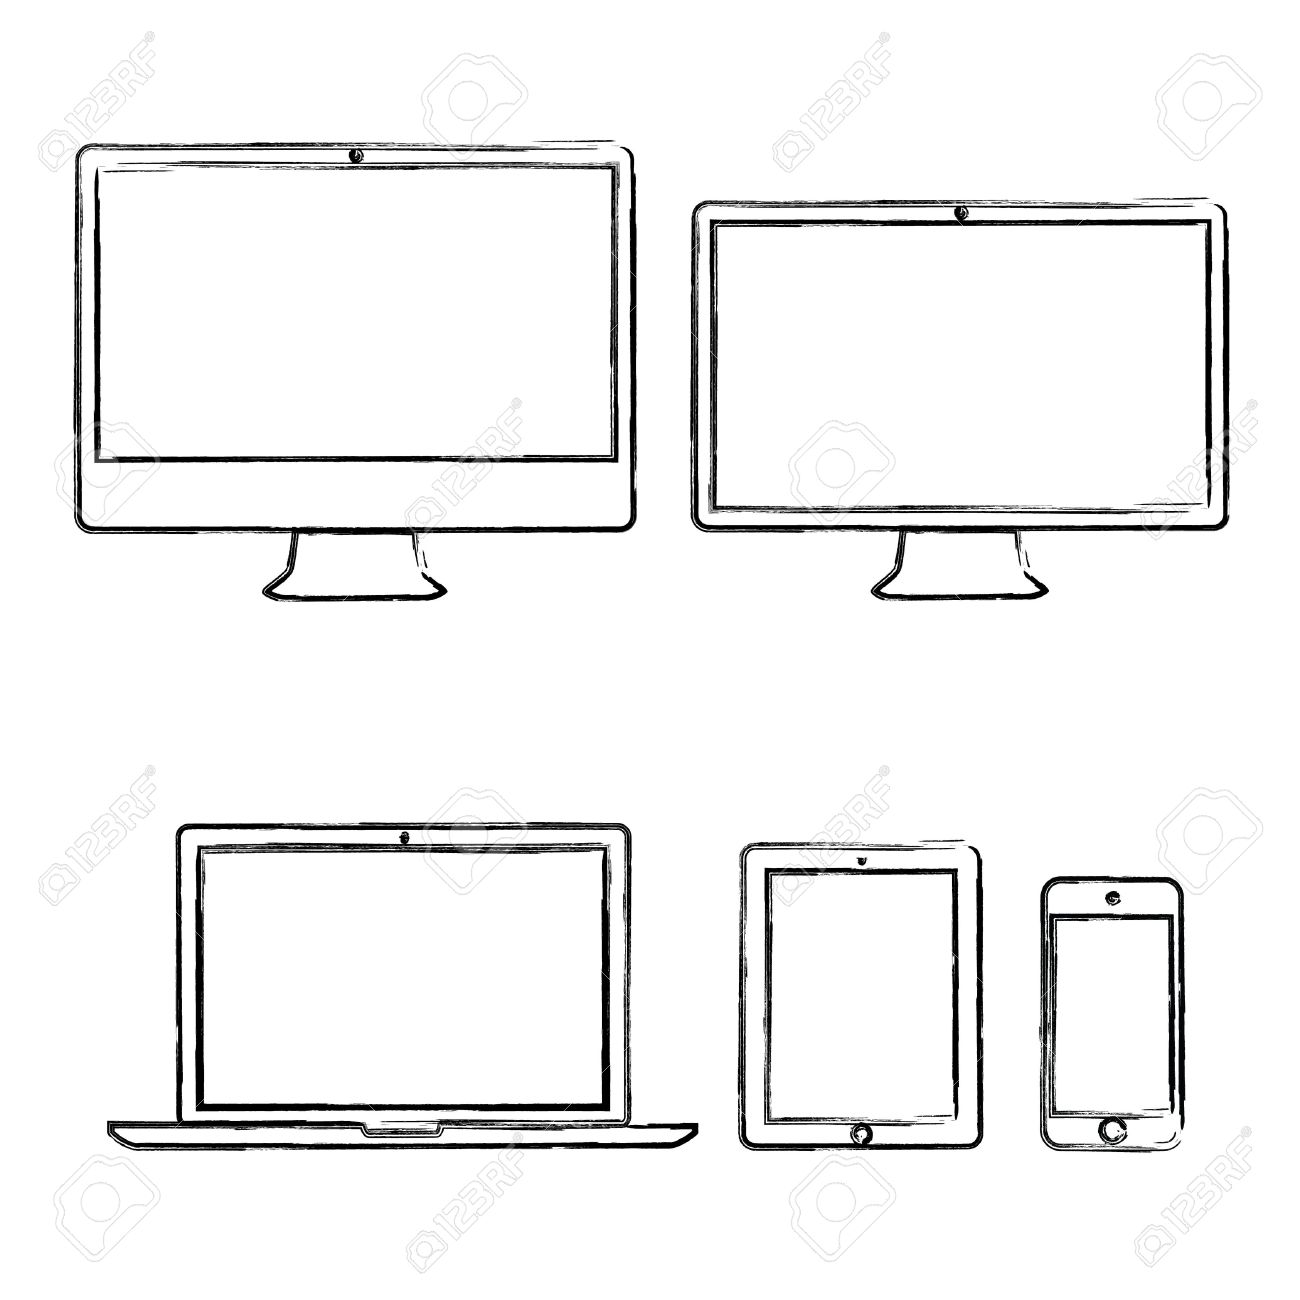 Hand-drawn electronic devices vector illustration Stock Vector - 21019800